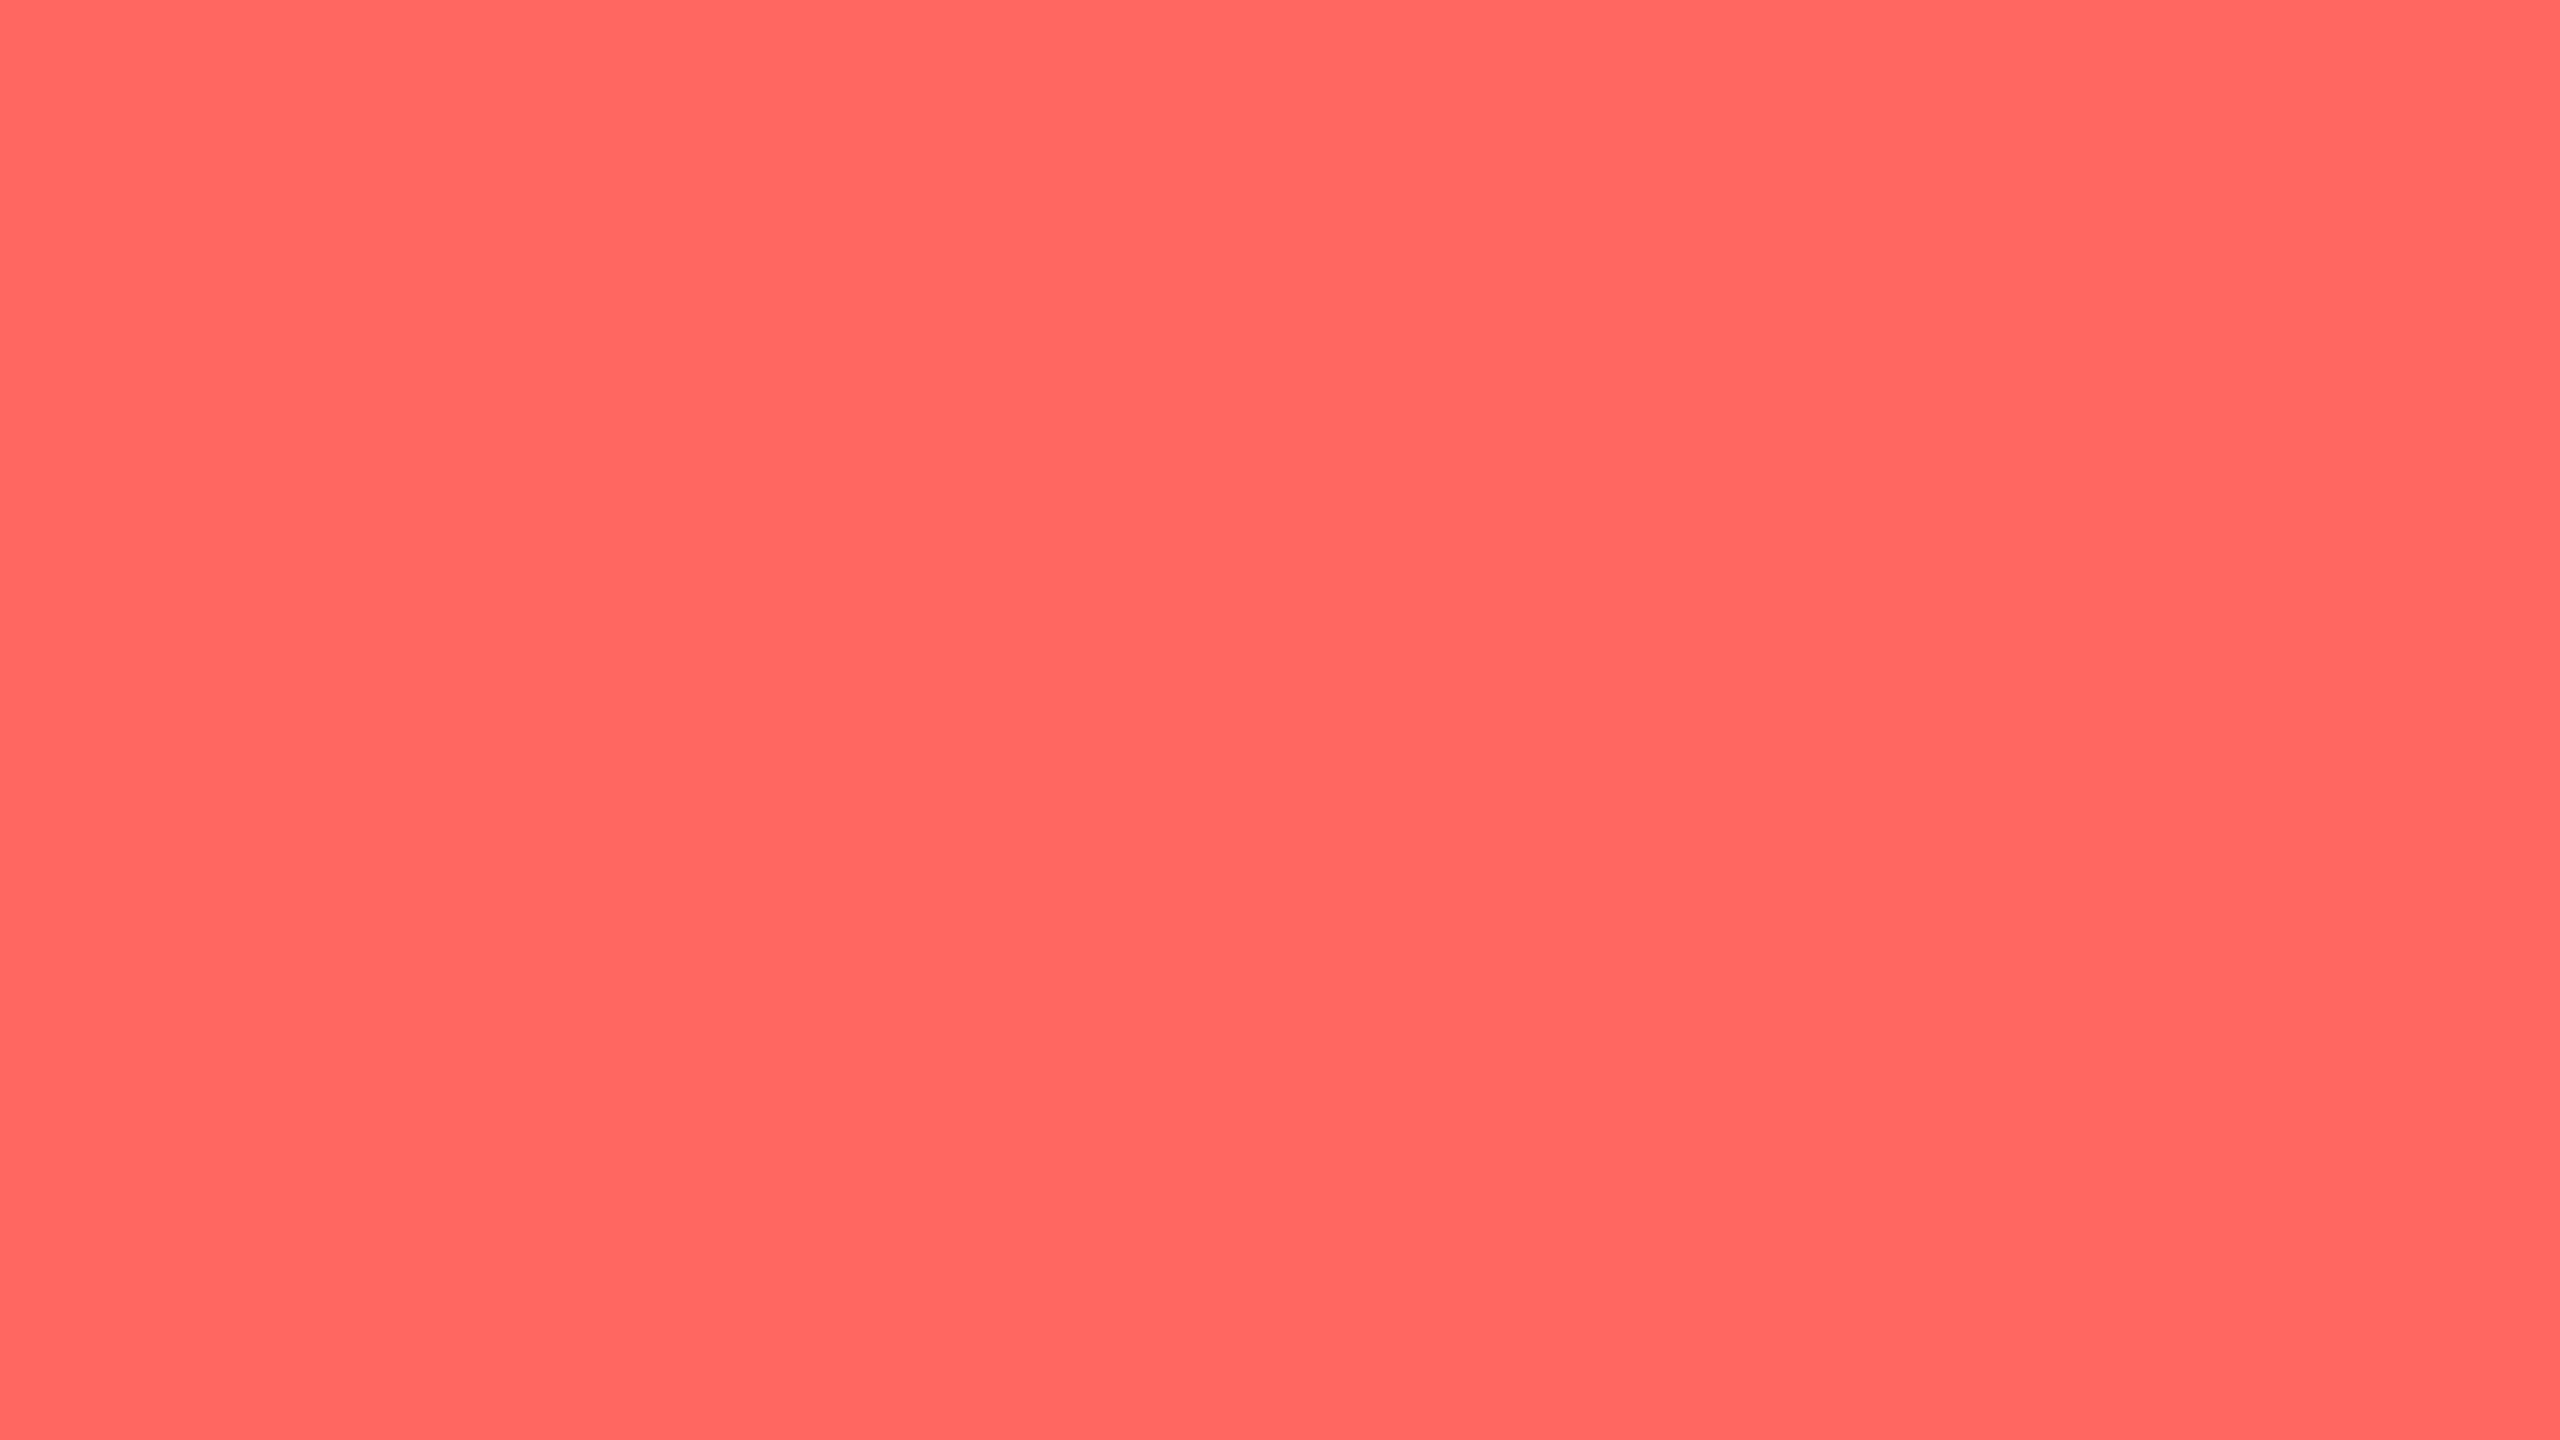 Orange Color Wallpaper Hd 2560x1440 Pastel Red Solid Color Background